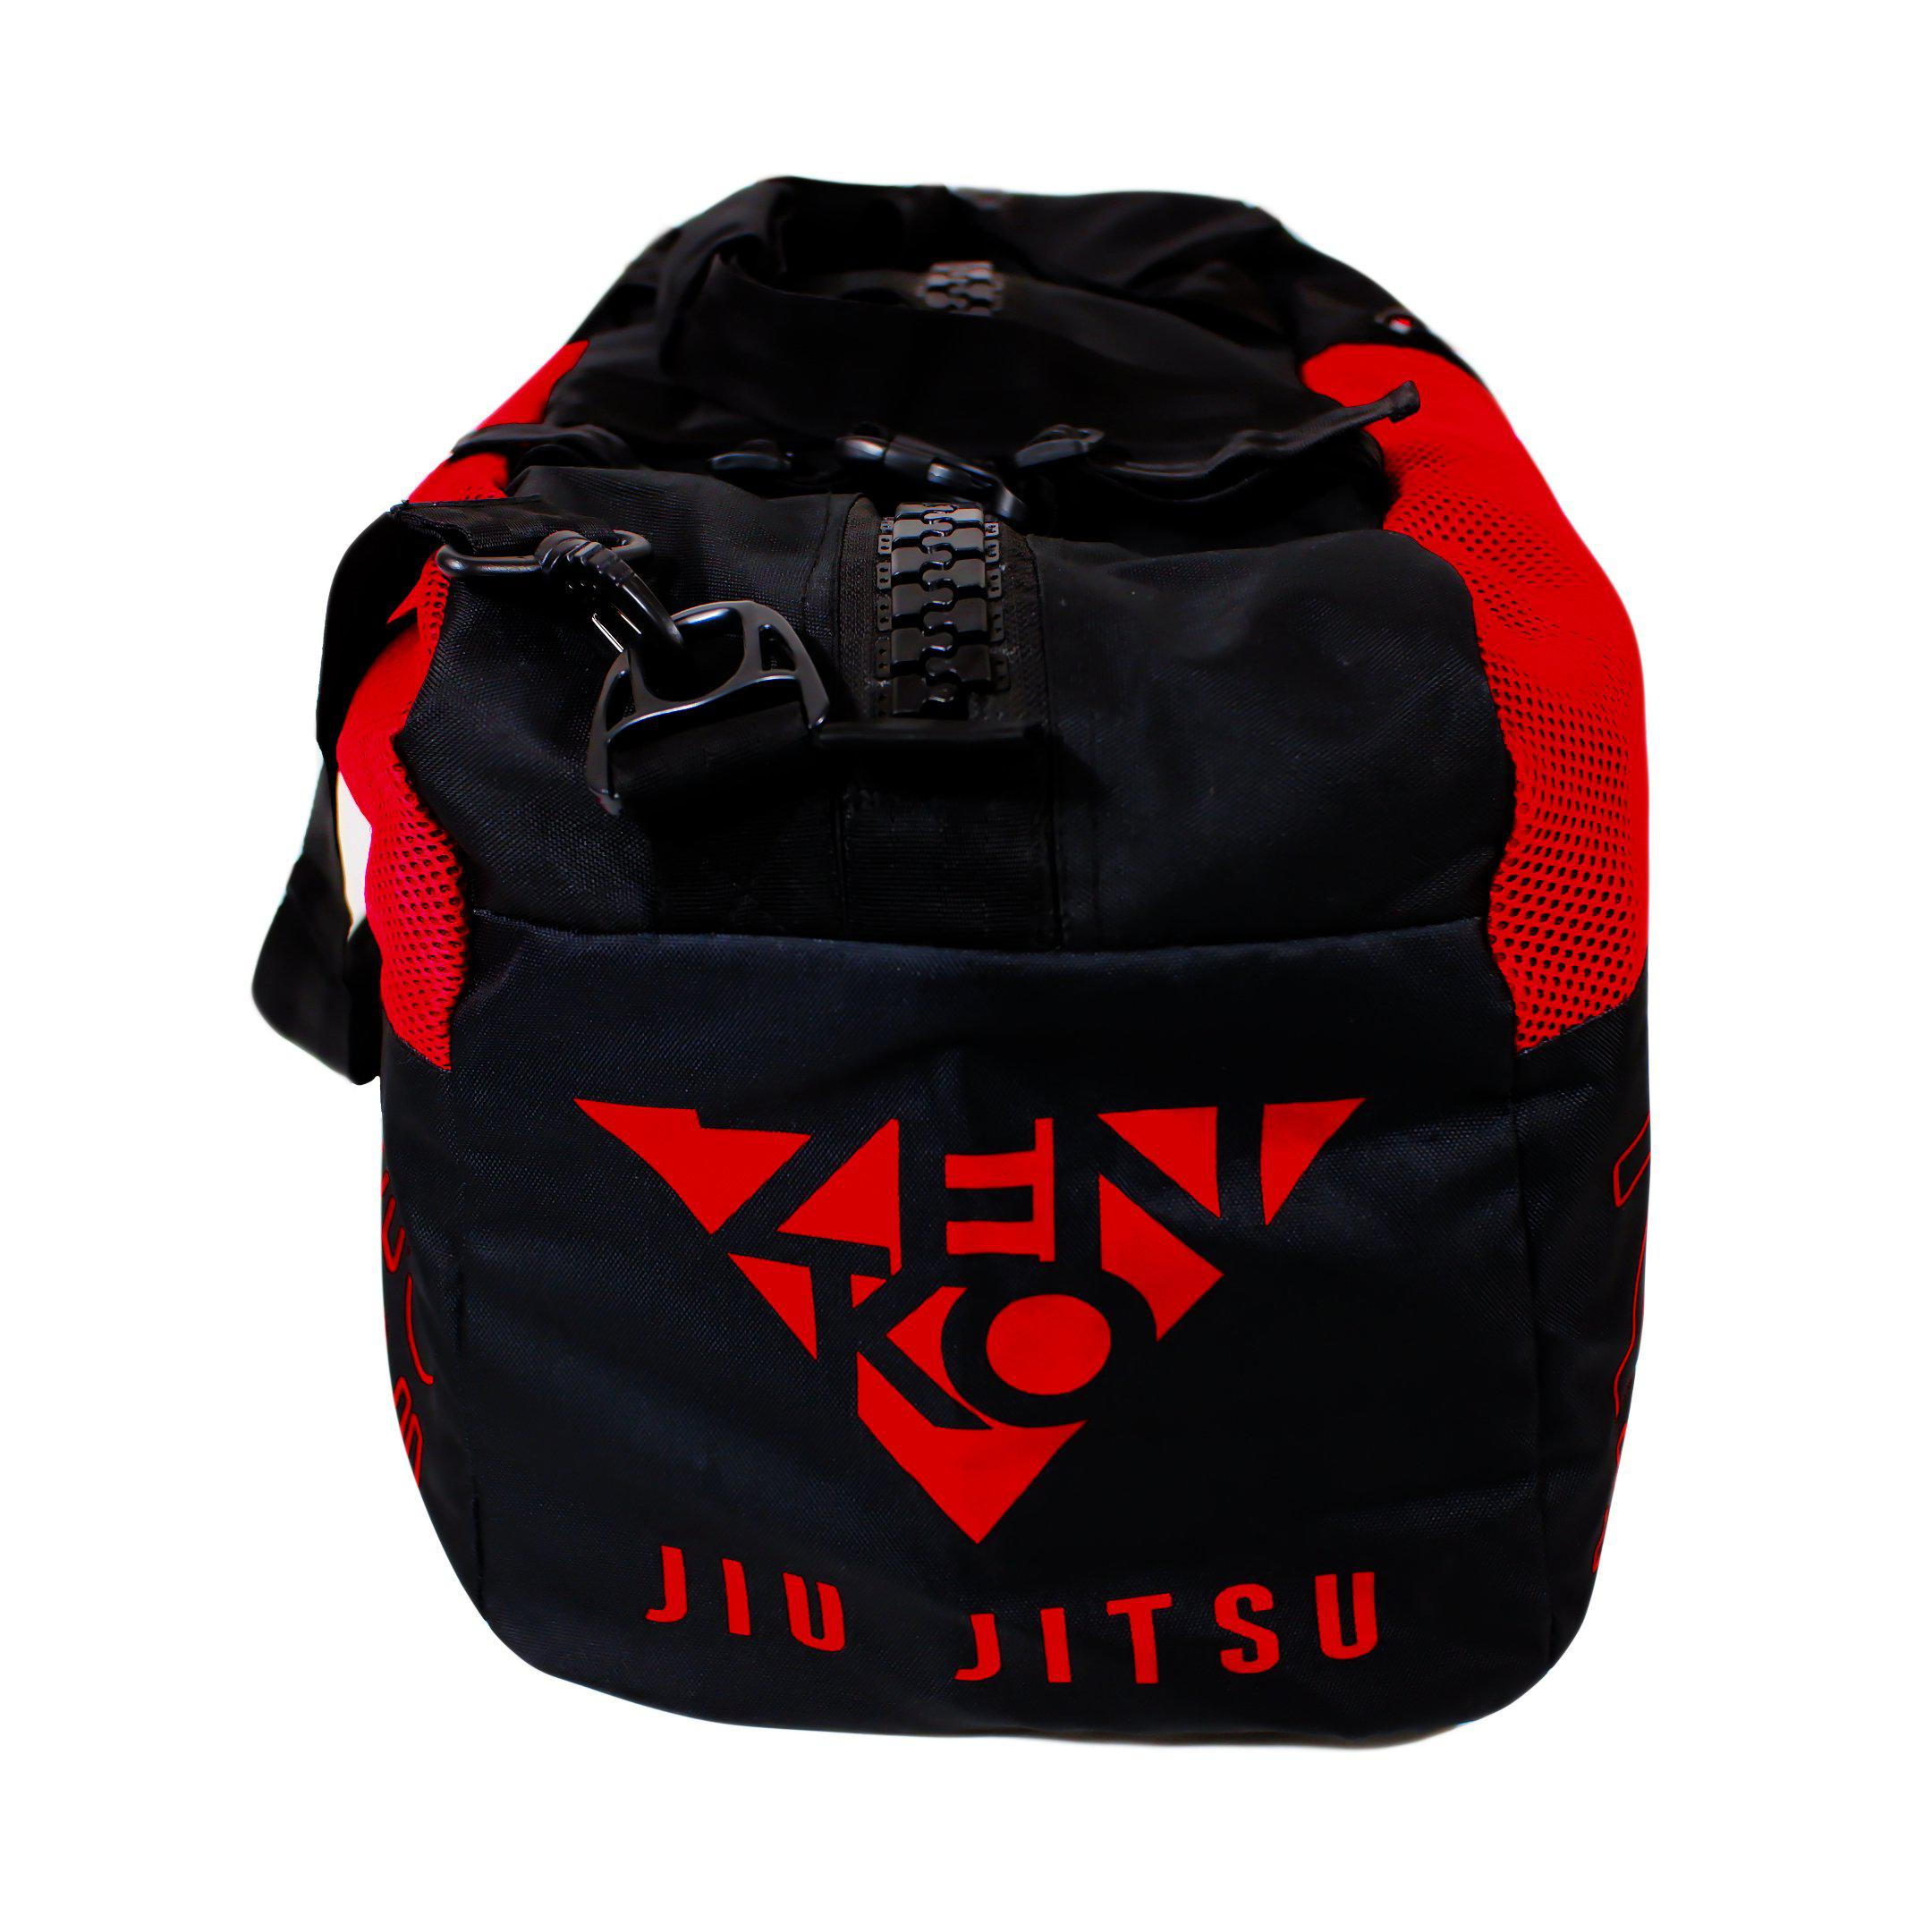 Zenko Fightwear - Ultimate Gear Bag - Red